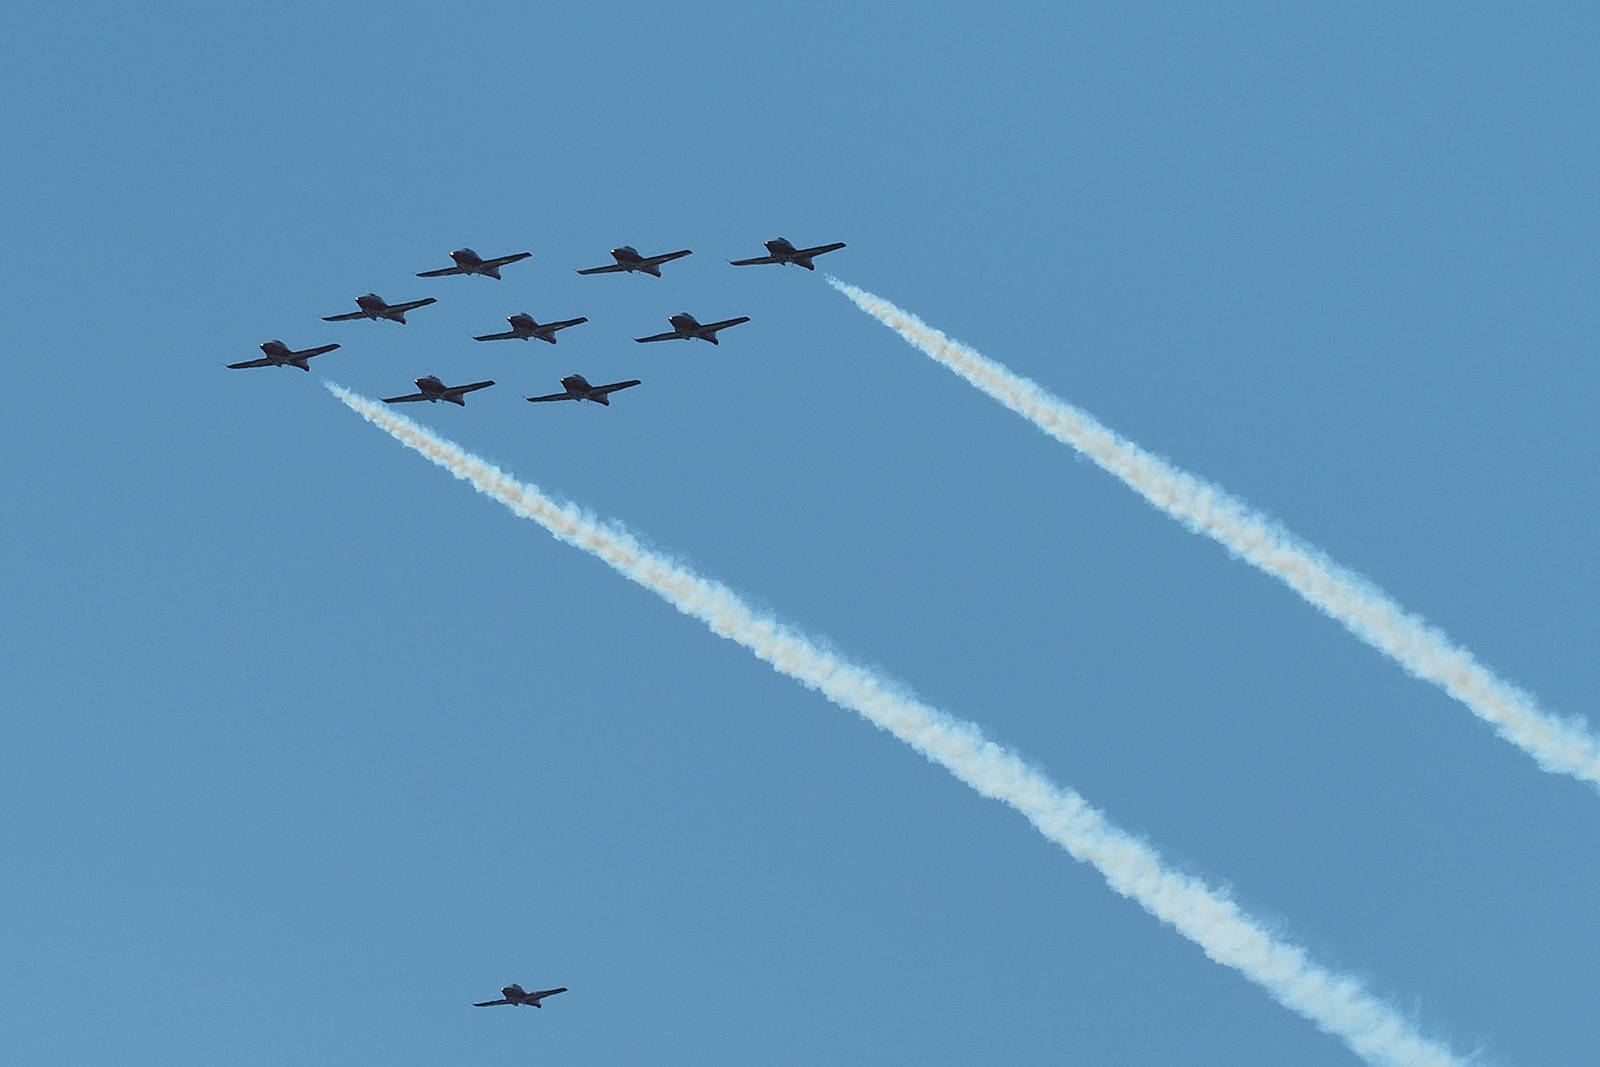 The CF Snowbirds air demonstration team flew over Nanaimo Regional General Hospital on Monday, July 19, as part of Operation Inspiration. (Chris Bush/News Bulletin)